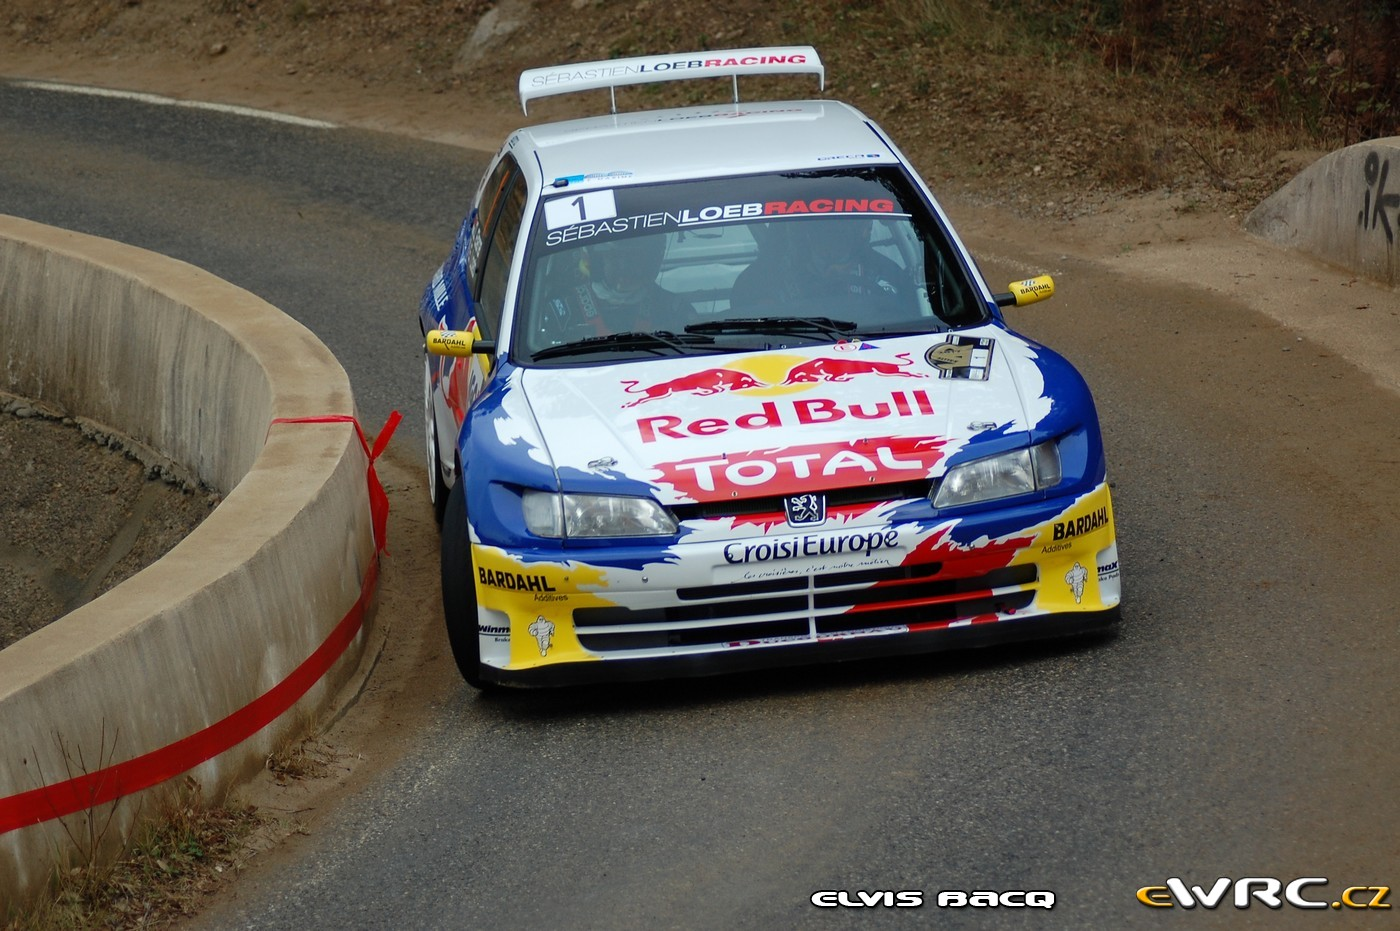 s bastien loeb daniel elena peugeot 306 maxi rallye du var 2017. Black Bedroom Furniture Sets. Home Design Ideas